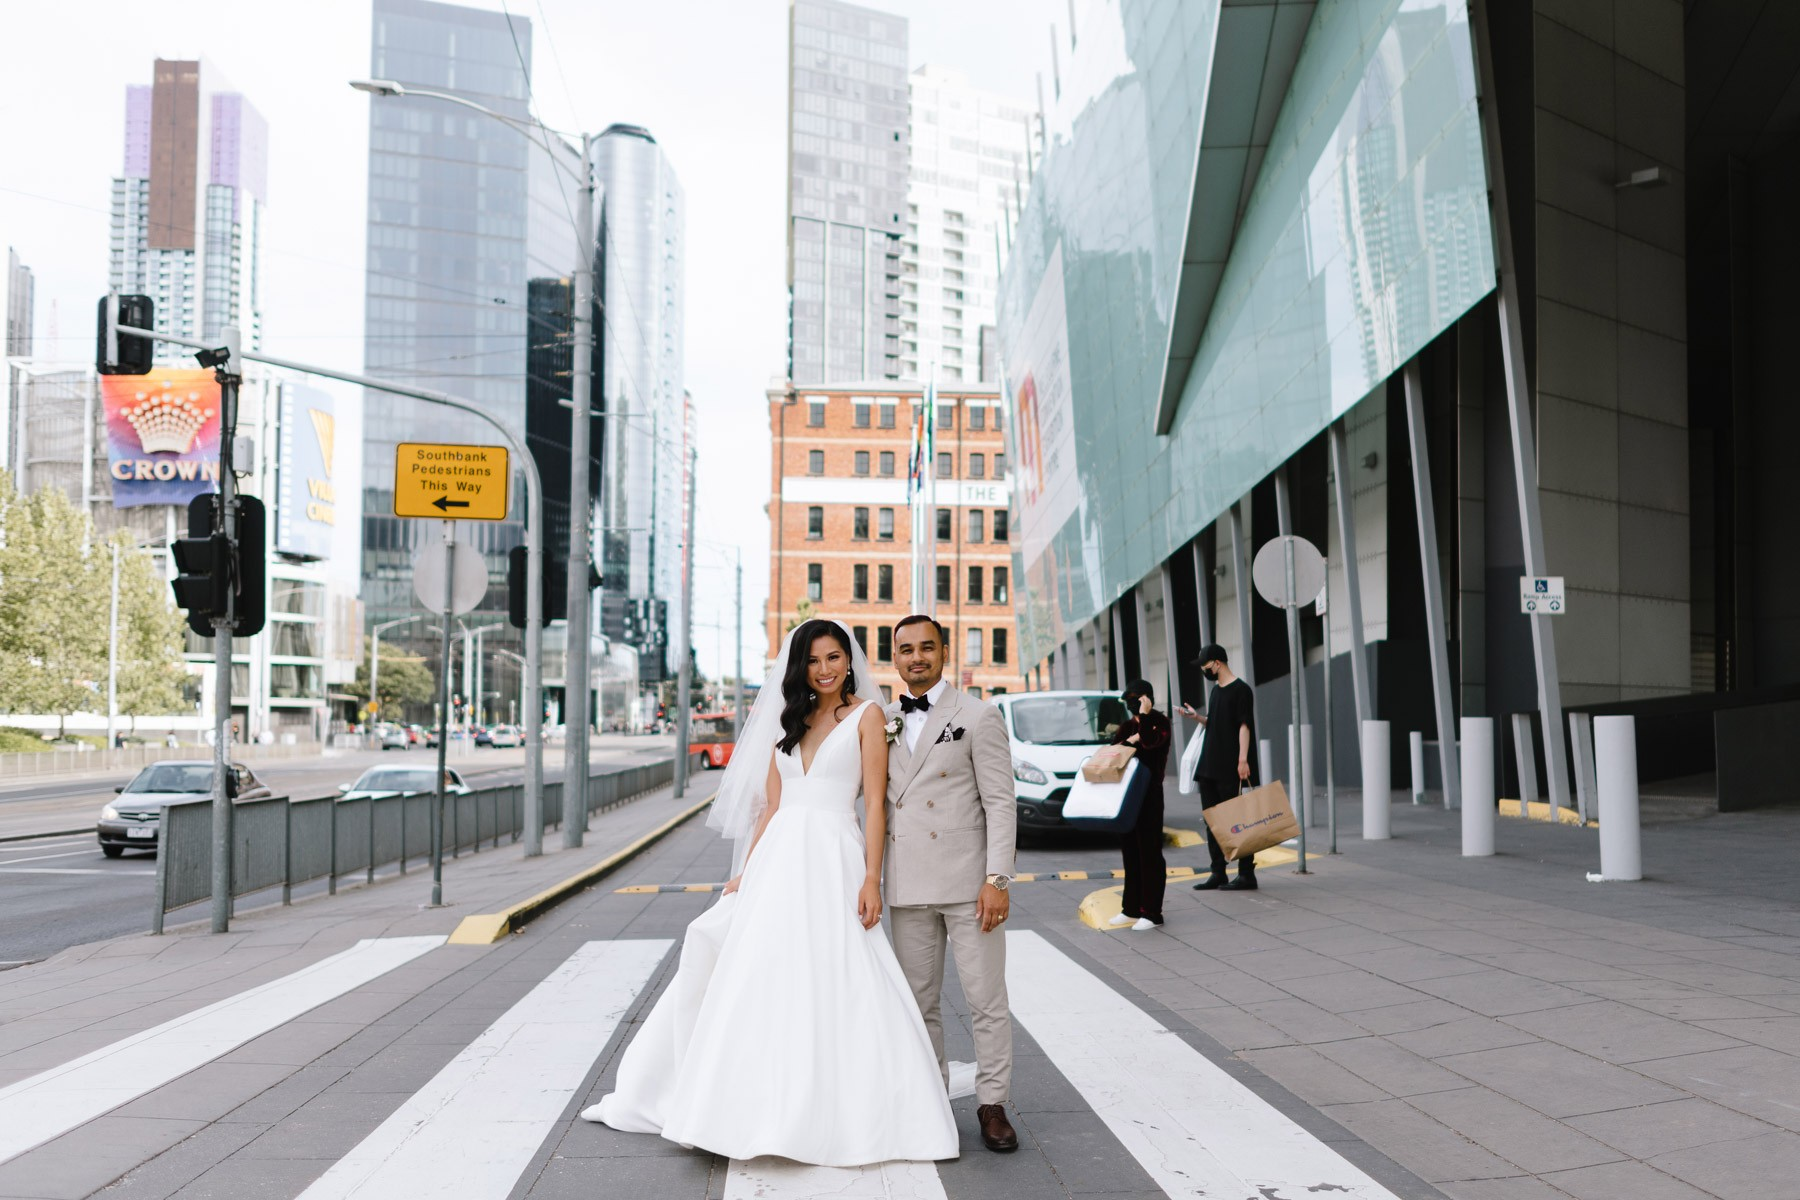 What are the best locations for wedding photography?